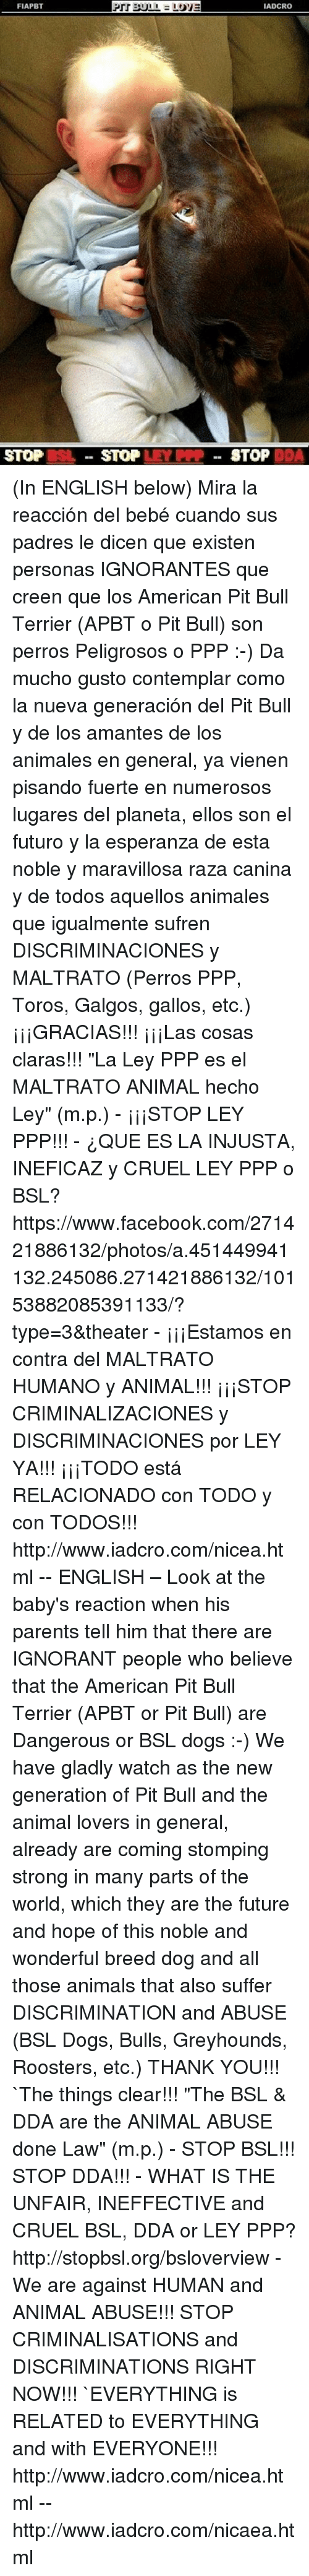 funny icrc memes of 2017 on me me ignorant people animals dogs and facebook fiapbt stop pit bull stop lov iadcro stop dda